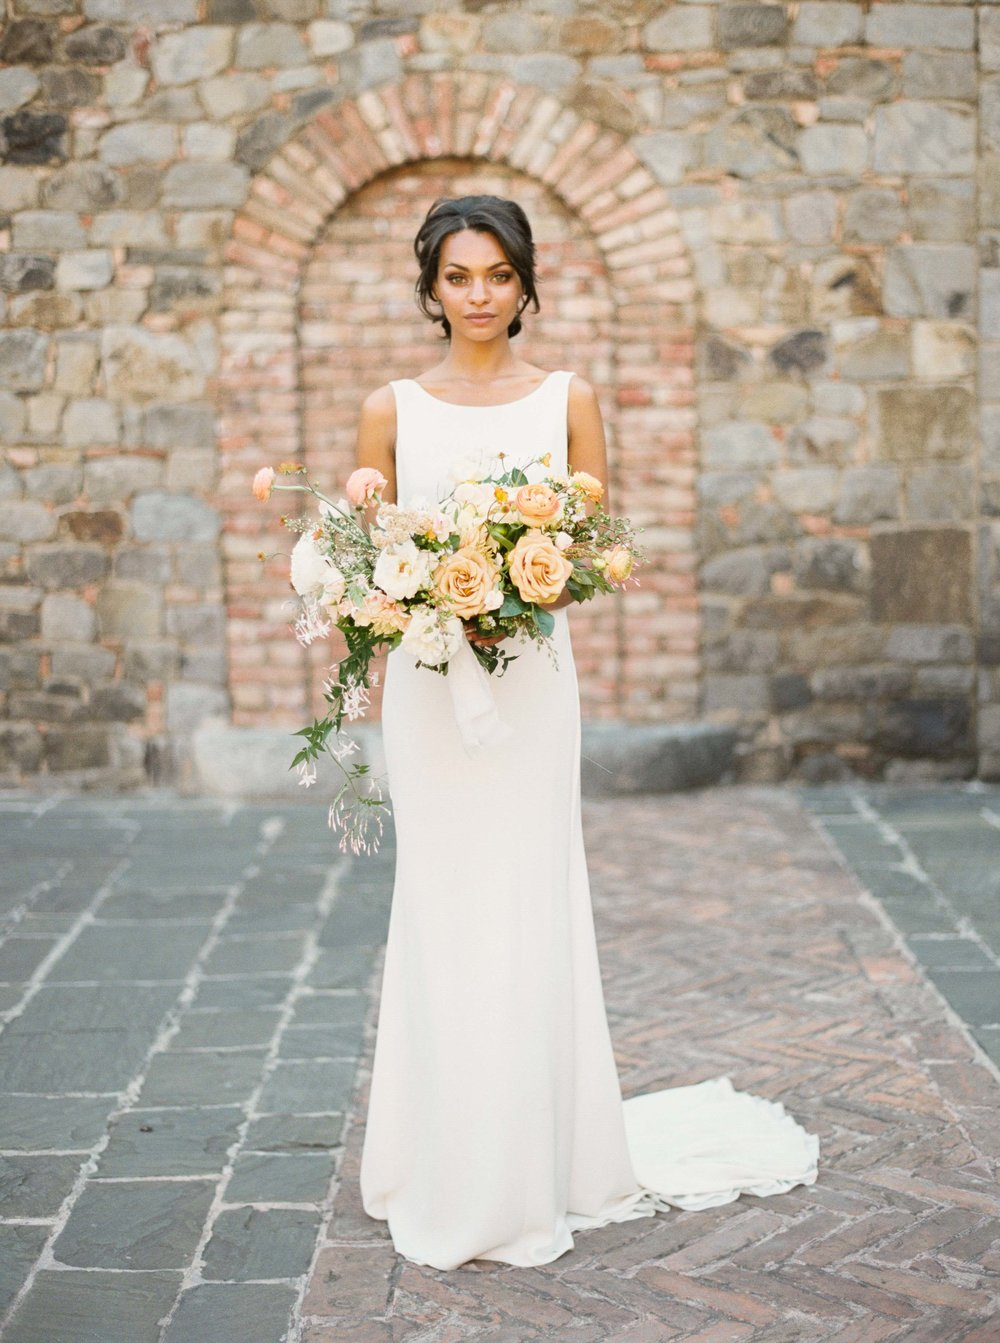 033napa_wedding_photographer_and_videographer_destination_and_elopement_photography.jpg